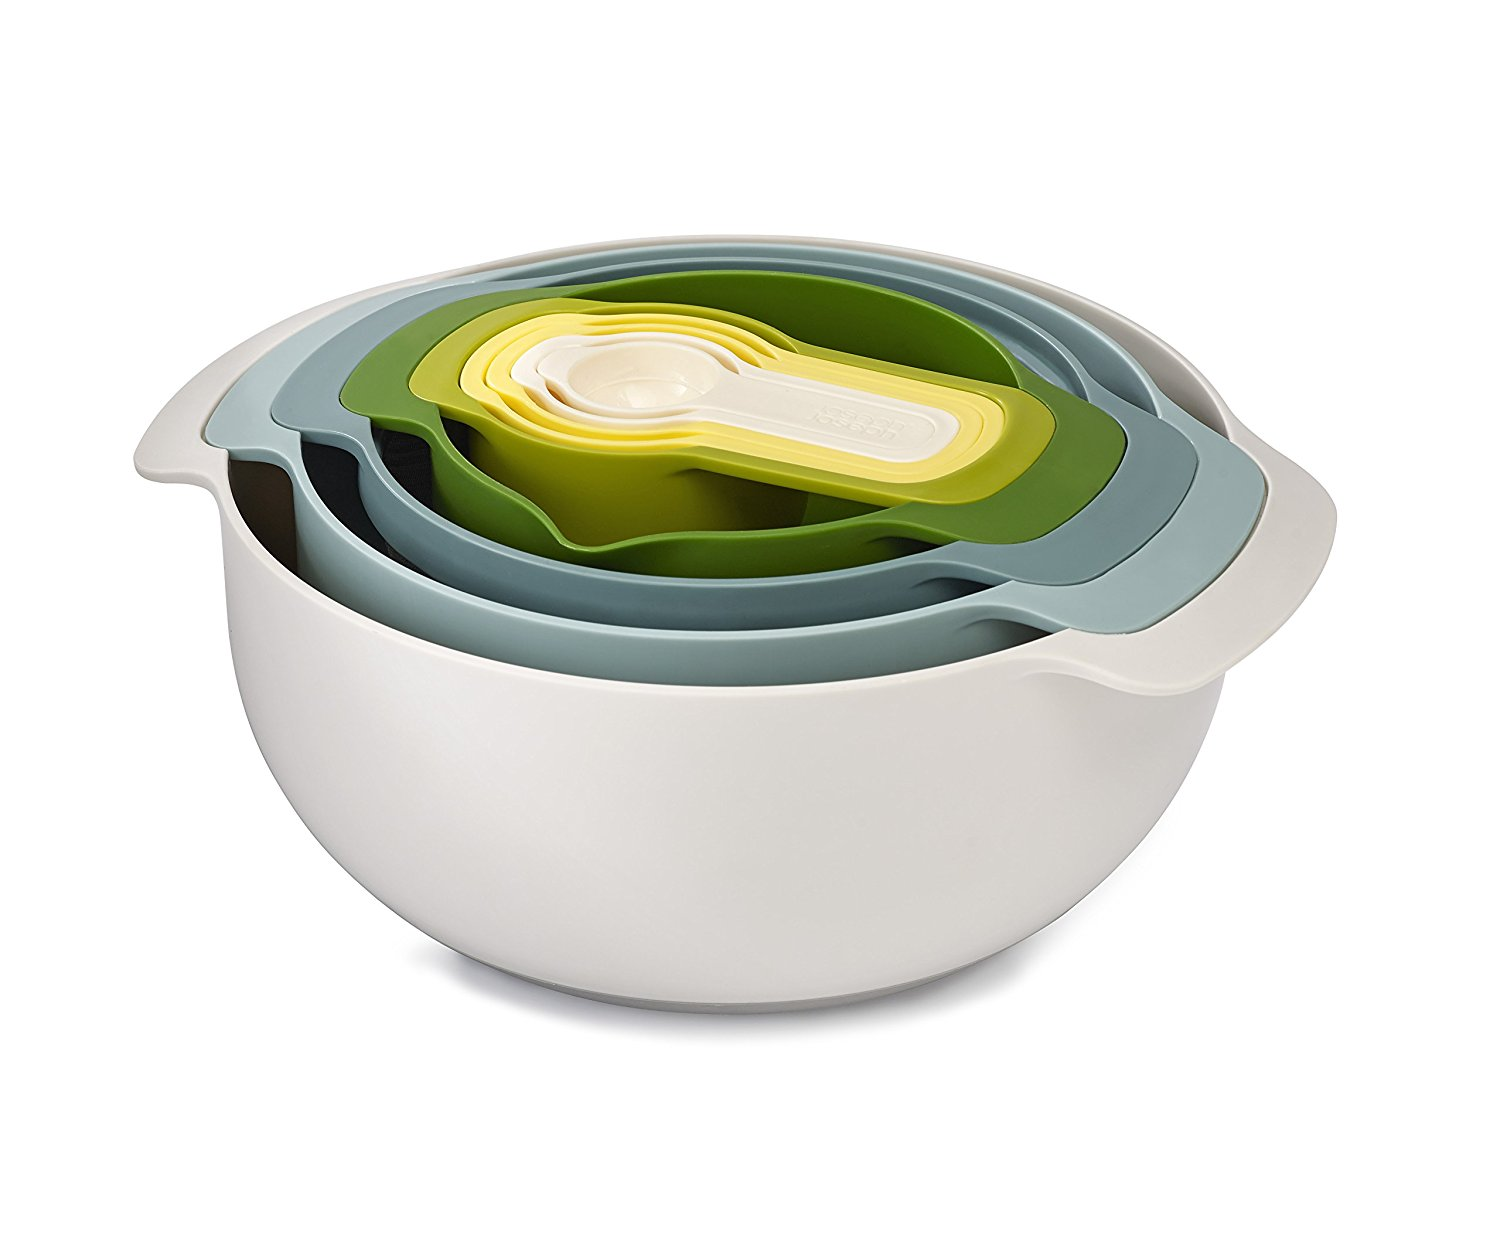 Gifts for Impossible People | Joseph Joseph Nesting Bowls Set, at Amazon